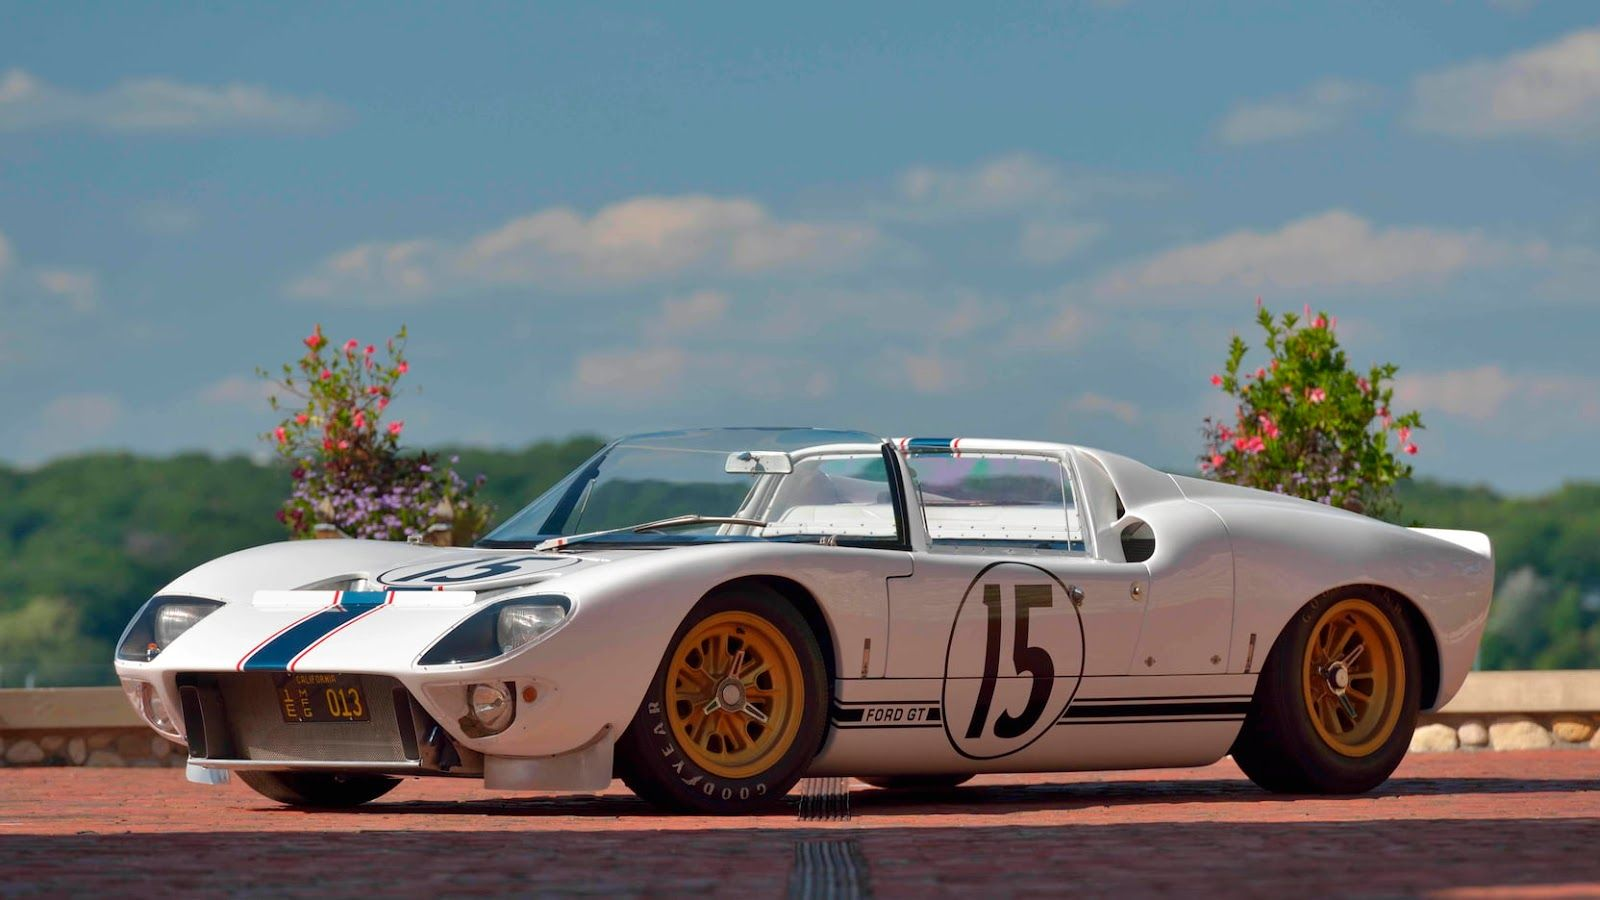 1965 Ford Gt Competition Prototype Roadster Ford Gt Ford Gt40 Sports Cars Luxury